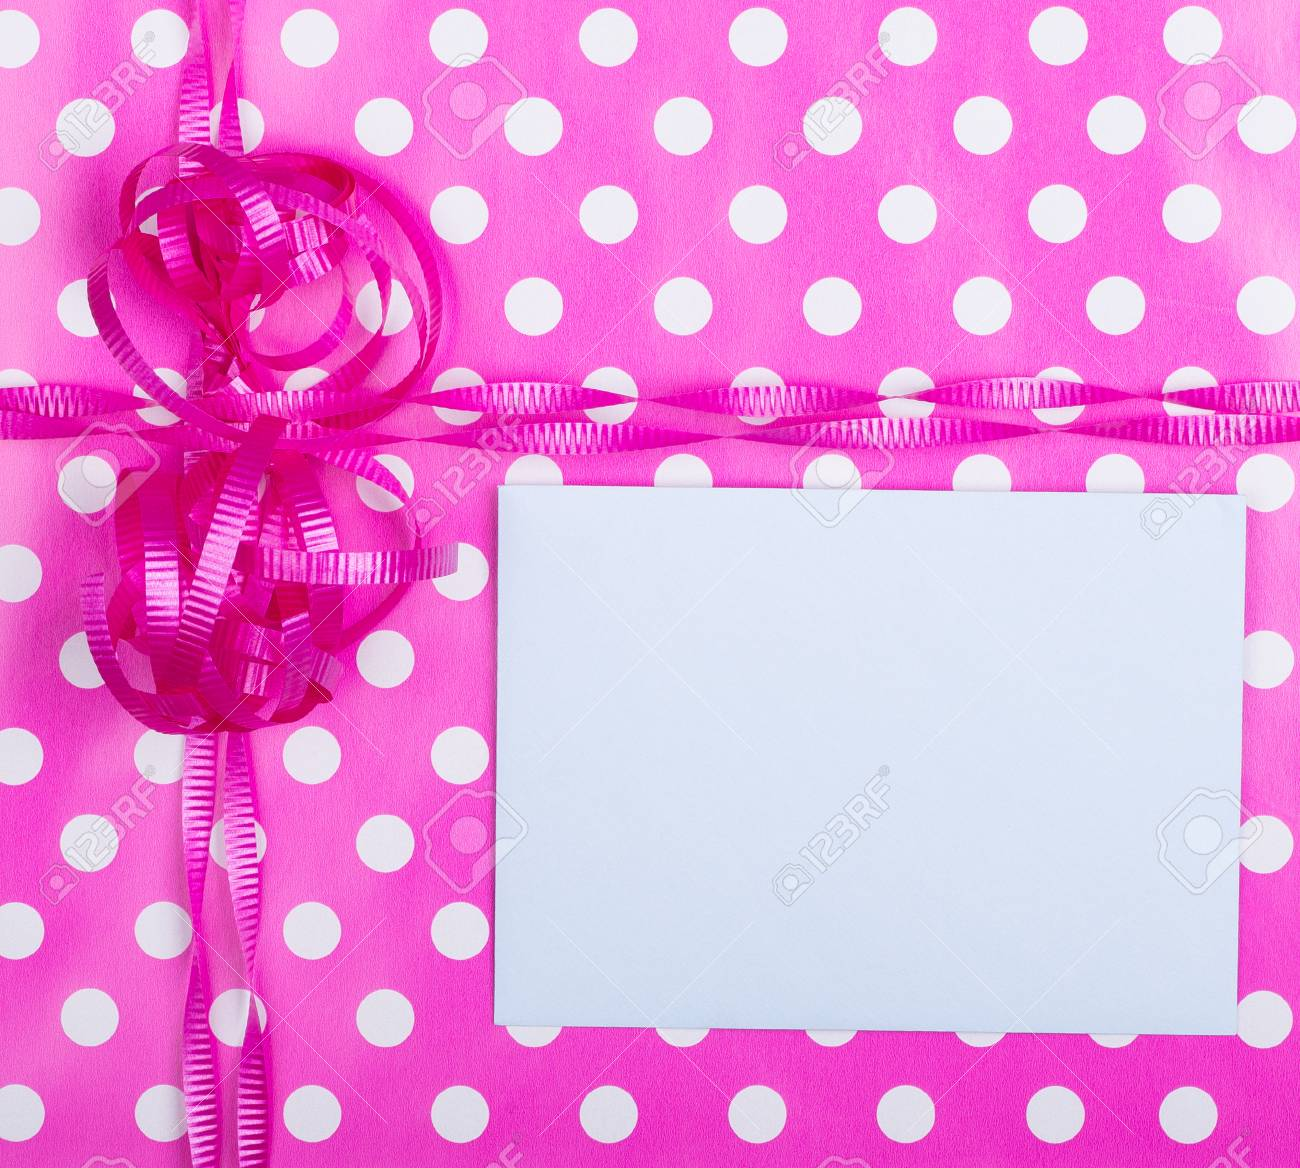 Birthday Gift Wrap Background With A Blank Note Card Stock Photo